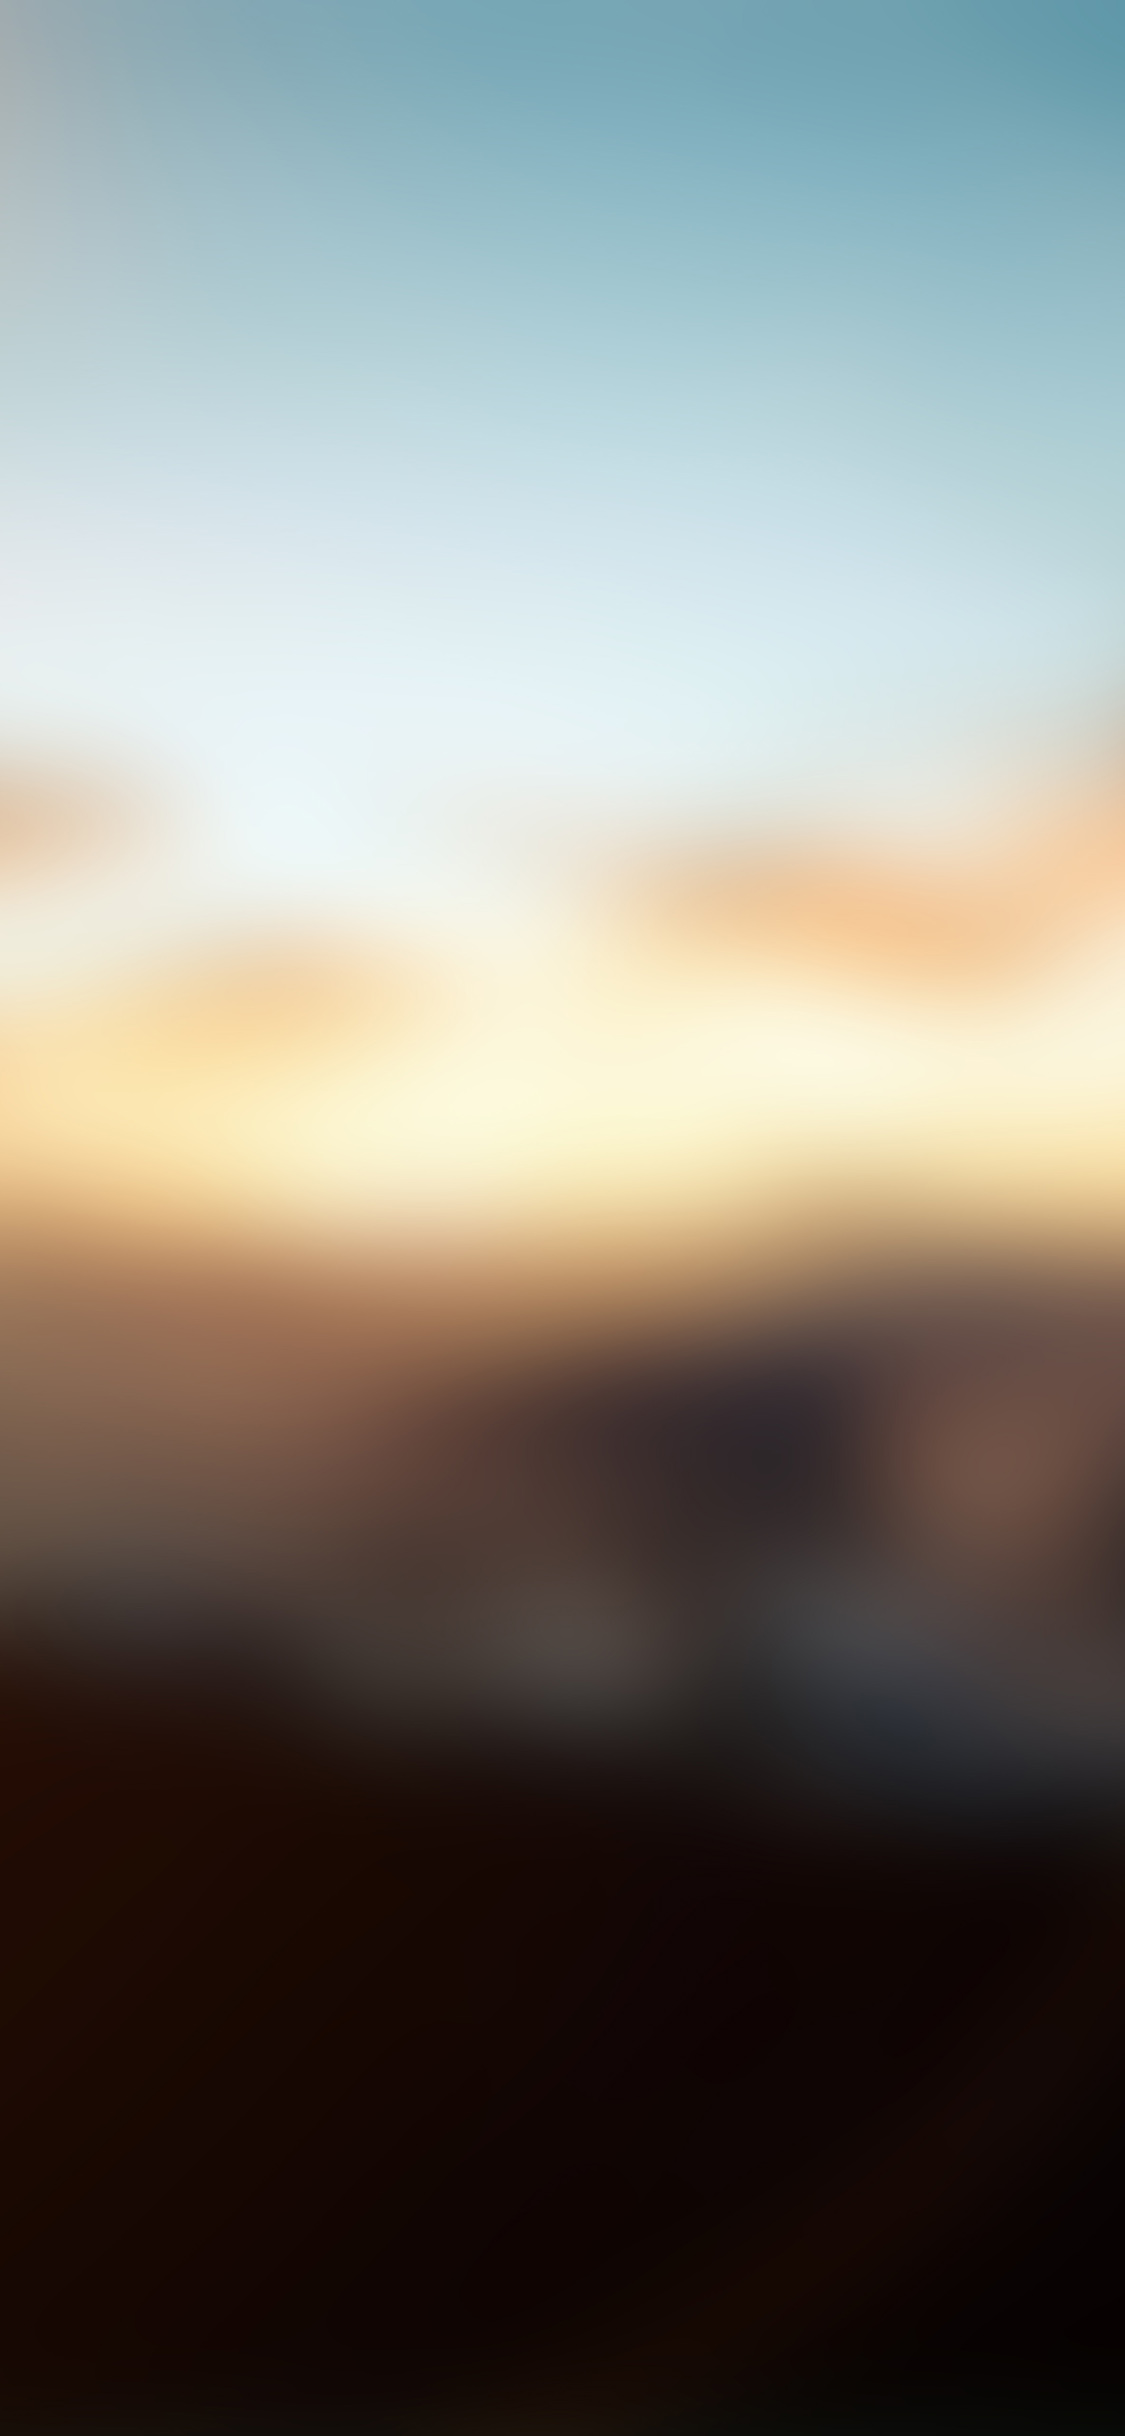 iPhoneXpapers.com-Apple-iPhone-wallpaper-sj78-sky-blur-gradation-blur